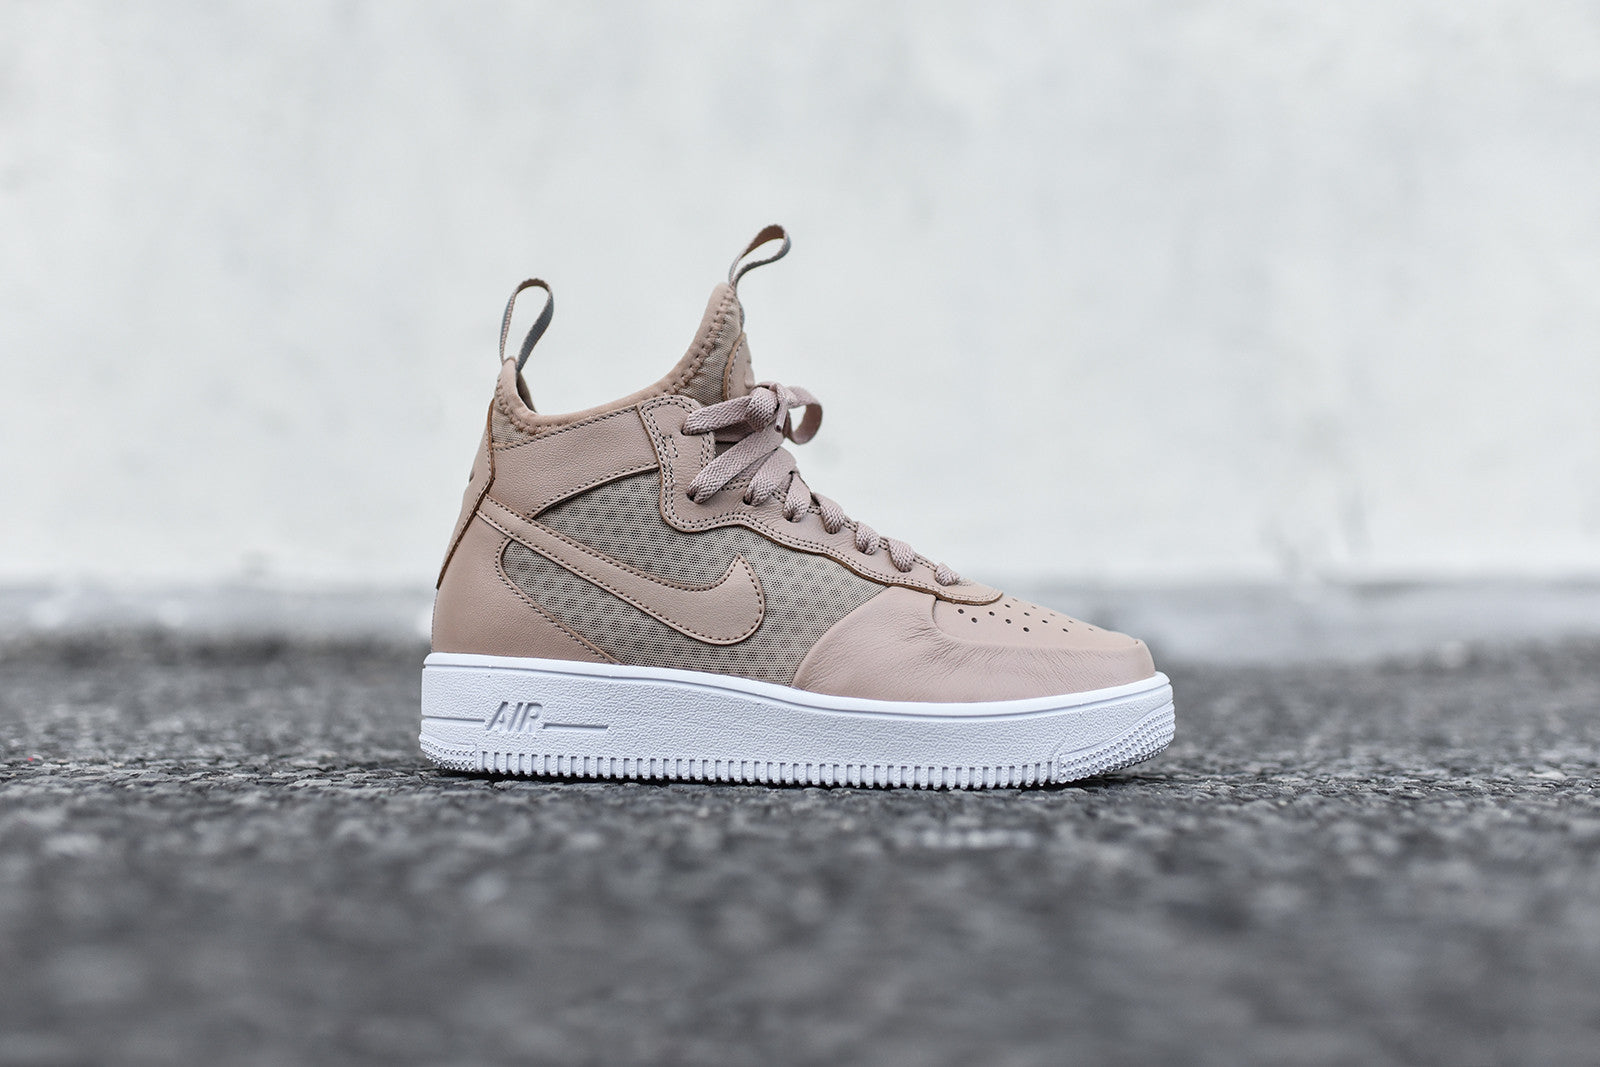 Wmns Mid Vachetta Air Nike 1 Tan Force Ultraforce y8Pm0wOvnN